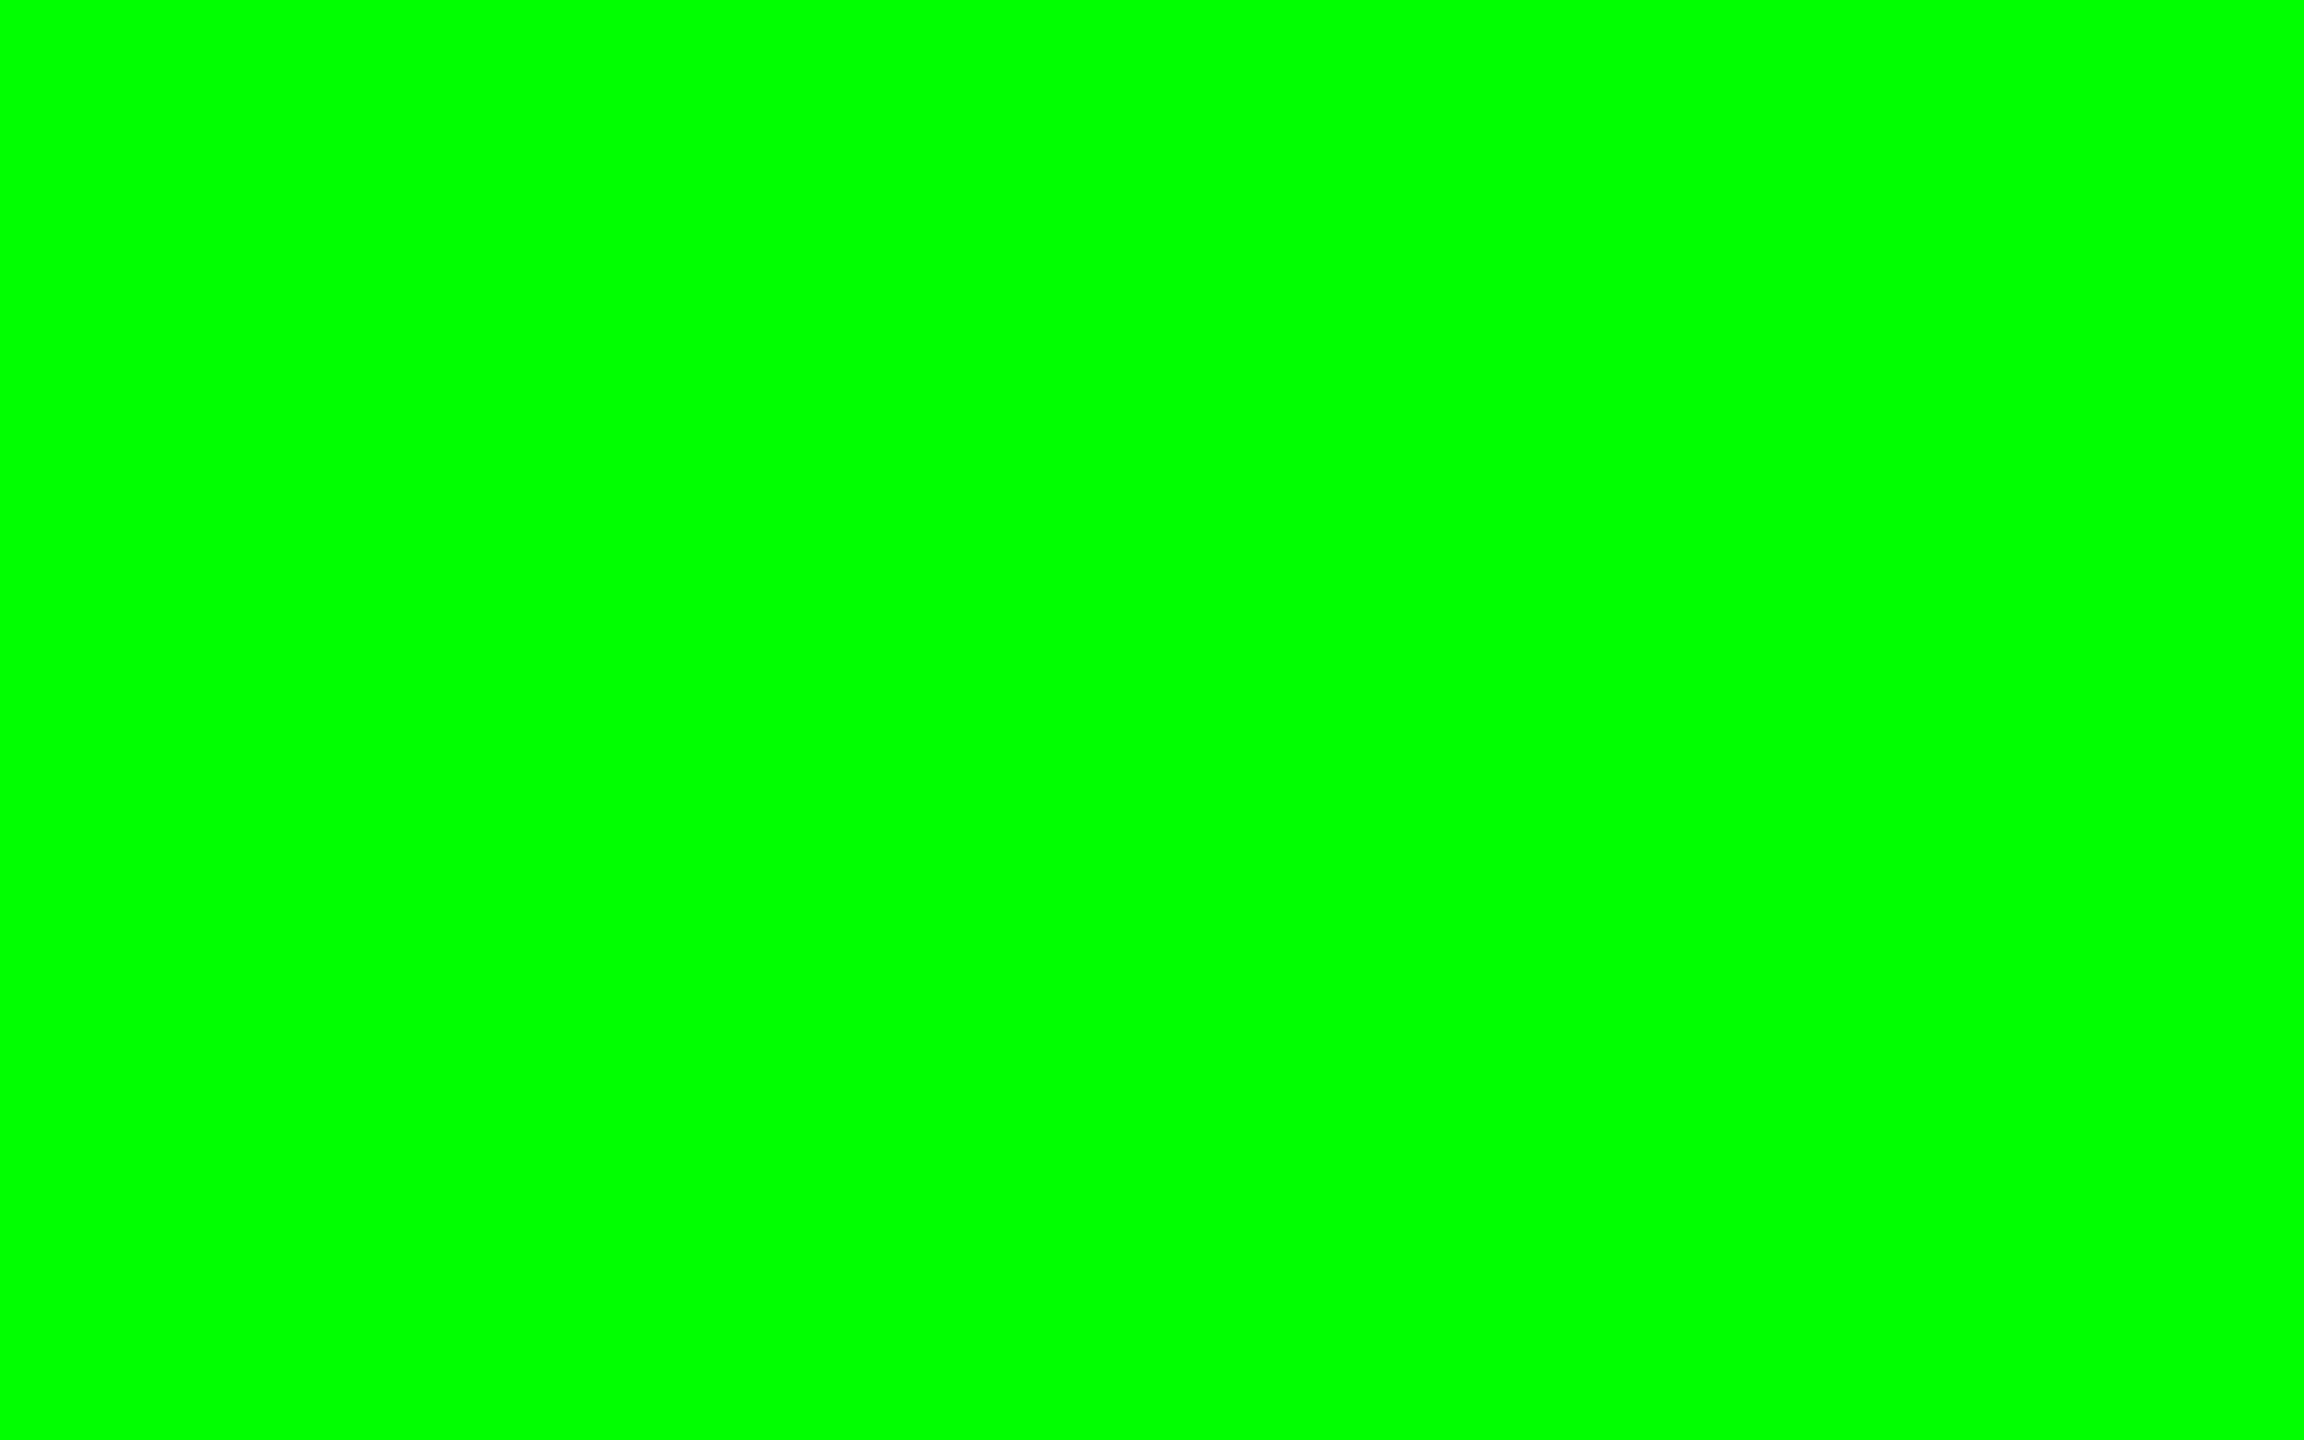 2304x1440 Electric Green Solid Color Background